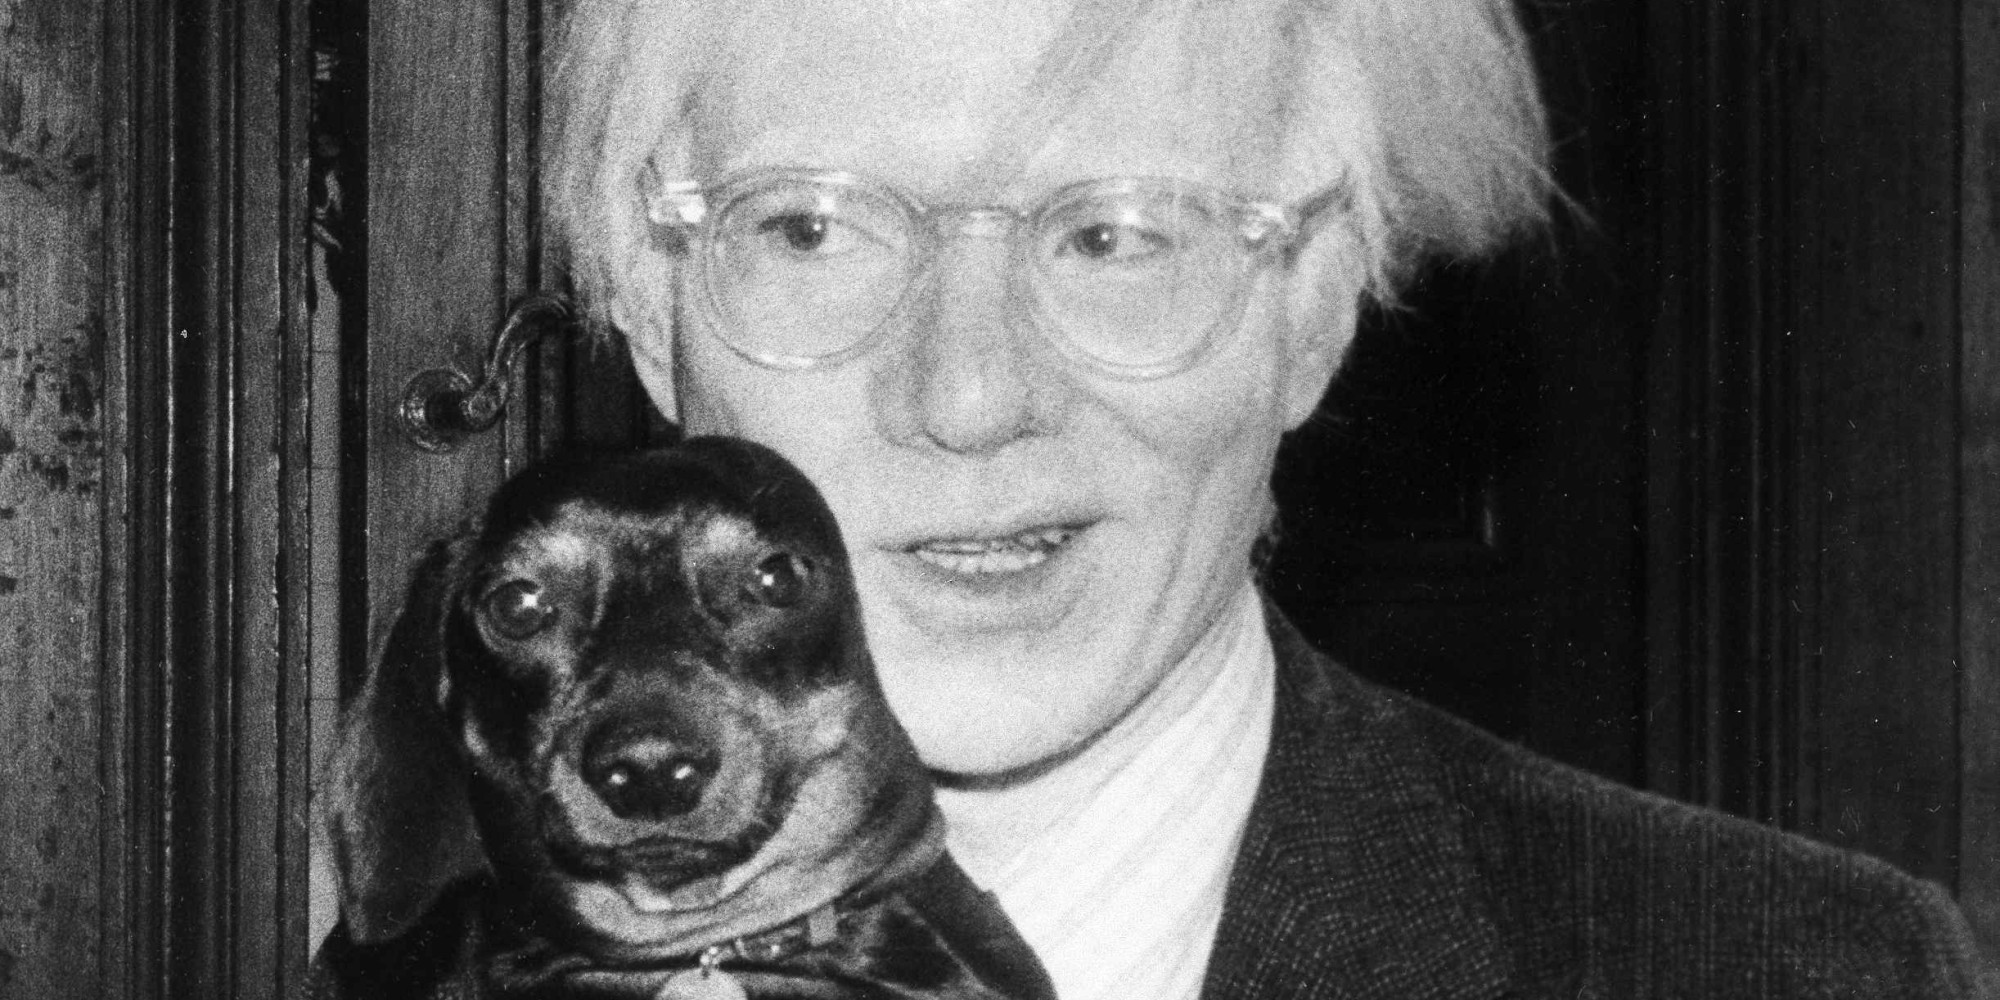 Andy warhol made a mistake that resulted in some of his for Andy warhol famous works